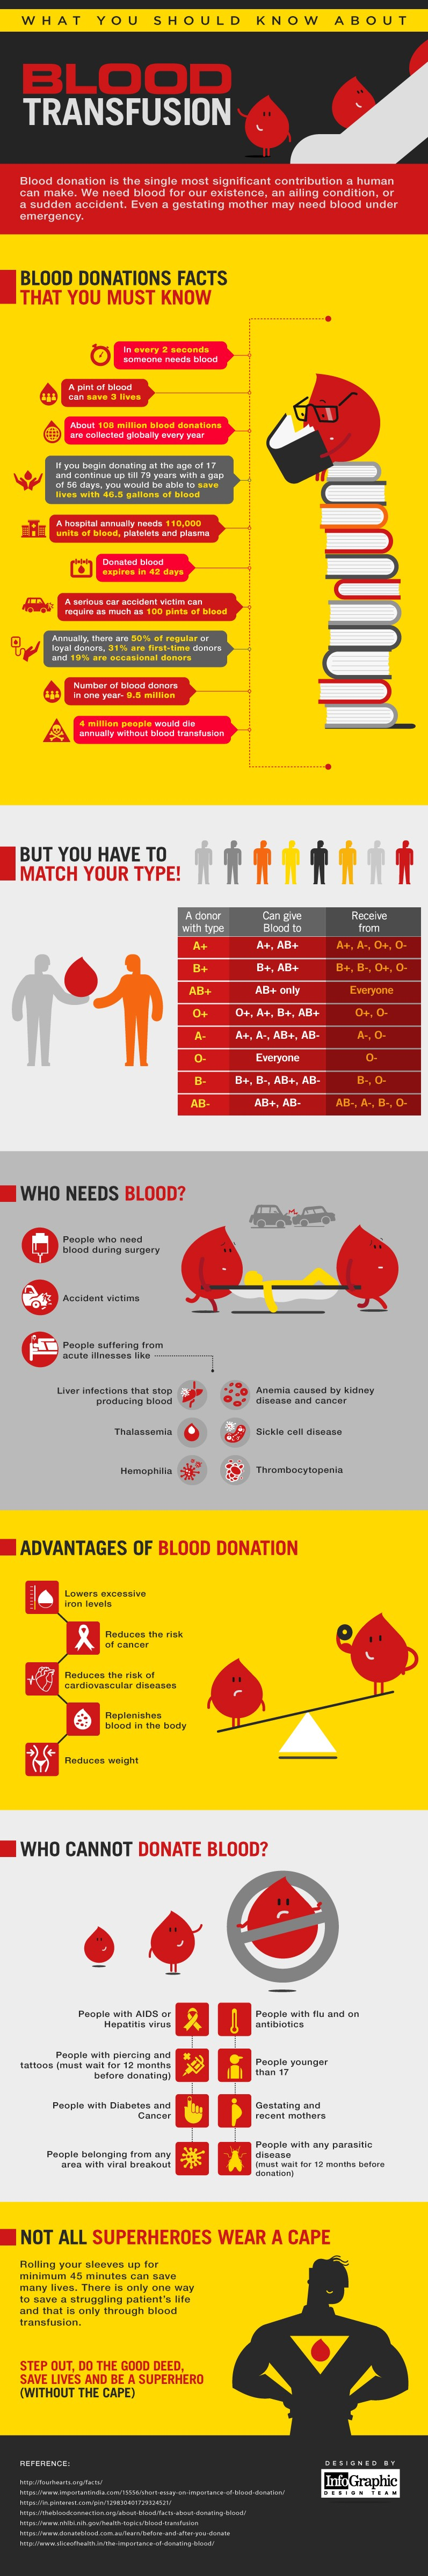 Be a Superhero Without a Cape: How to Donate Blood and Save Lives - Infographic